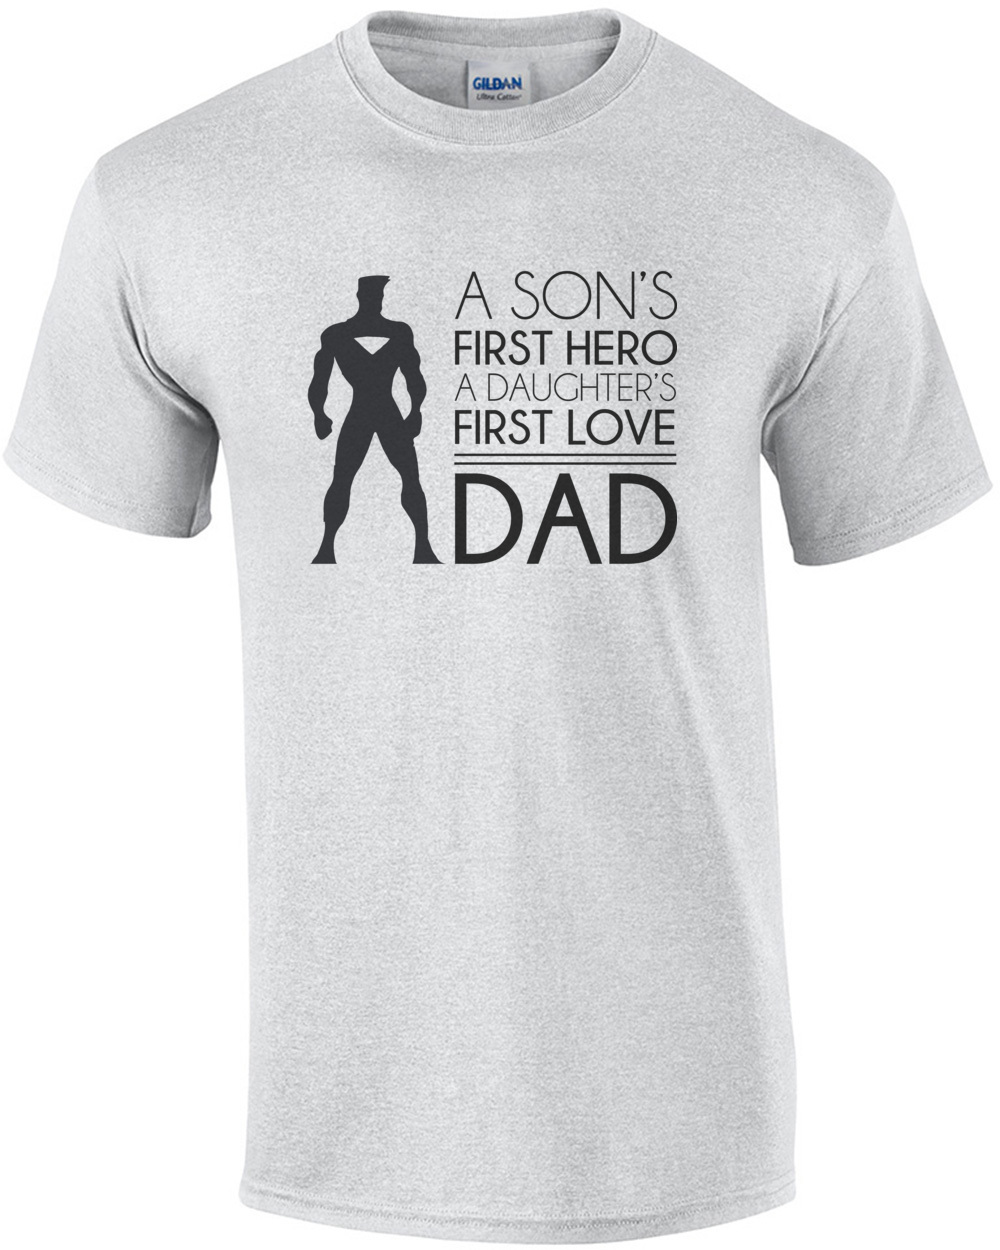 5897e7c04 a-sons-first-hero--a-daughters-first-love--dad--dad-tshirt--fathers-day- tshirt-mens-regular-ash.jpg